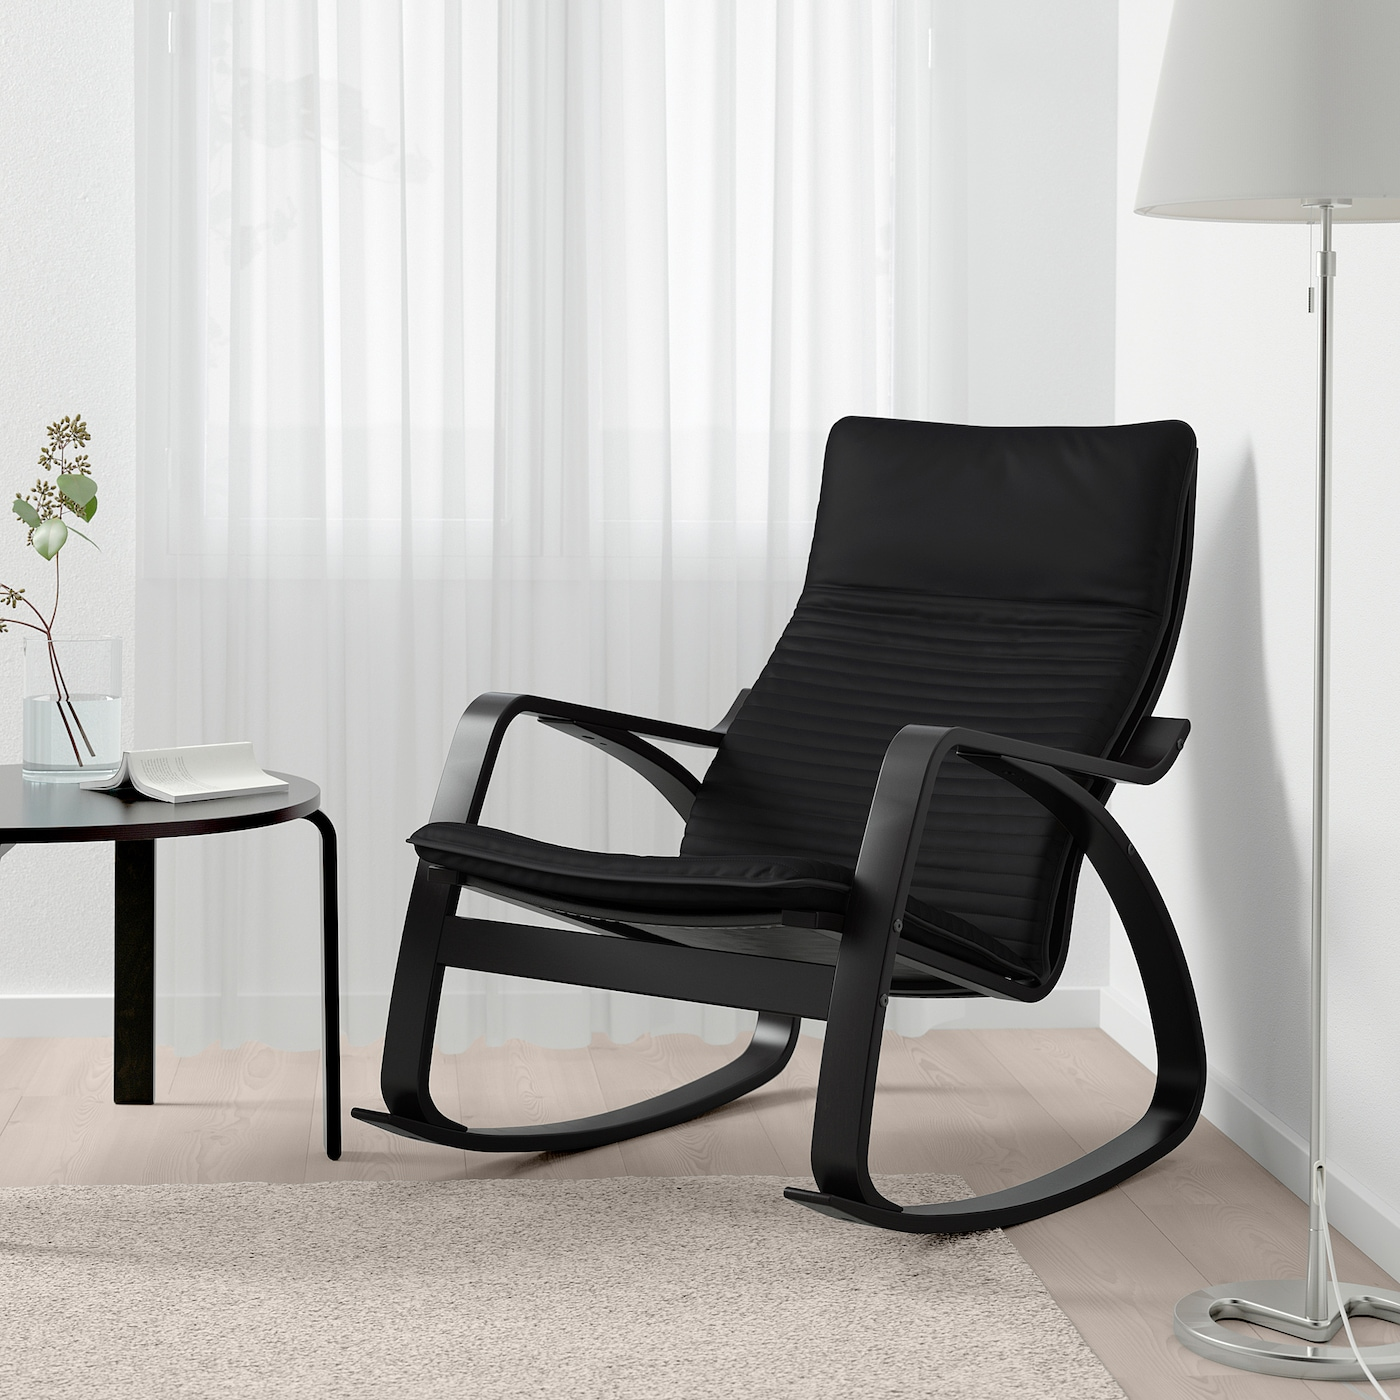 POÄNG Rocking chair black brown, Knisa black